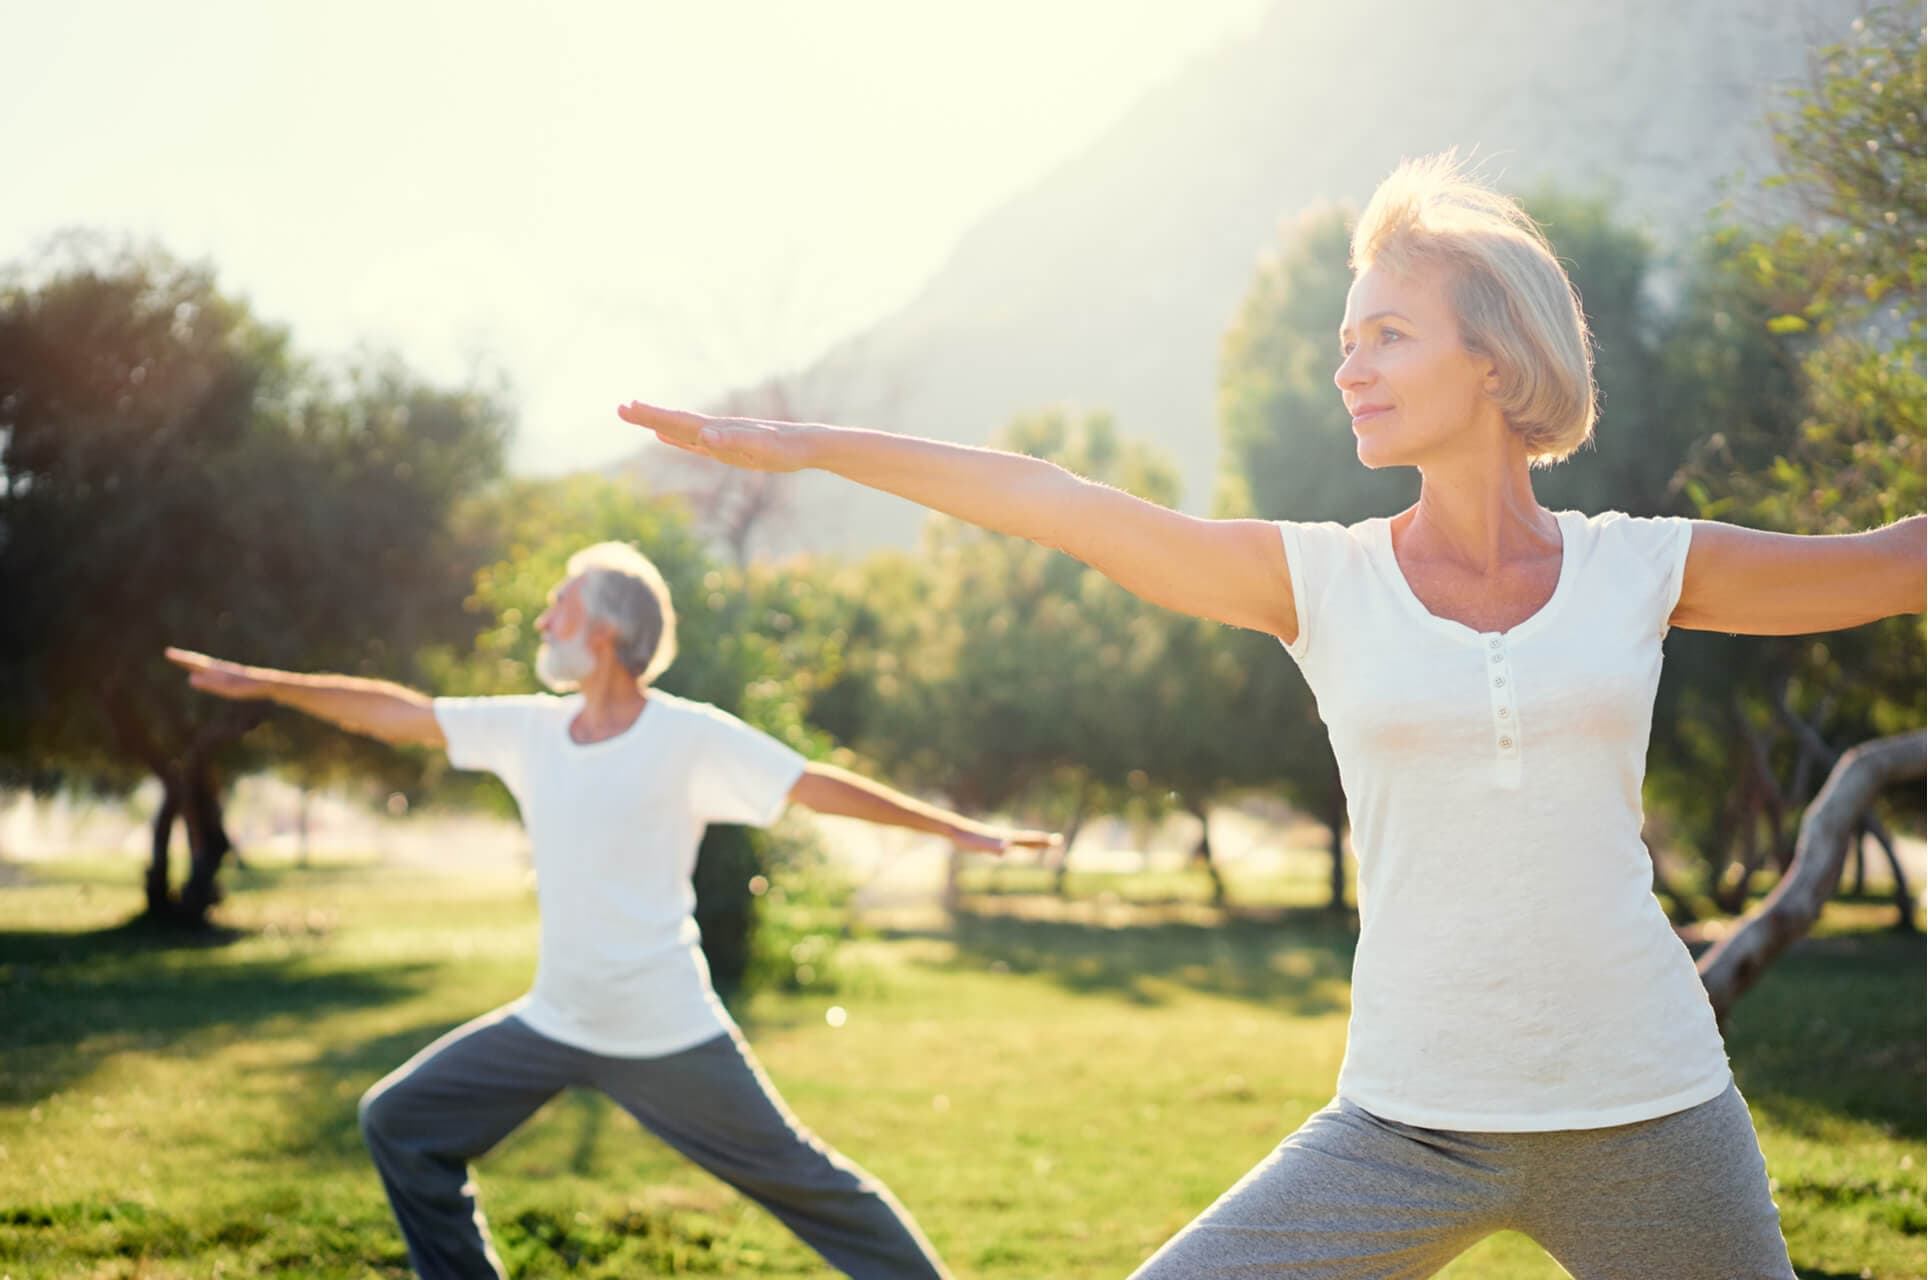 Coming Up With An Exercise Plan While Living With Varicose Veins